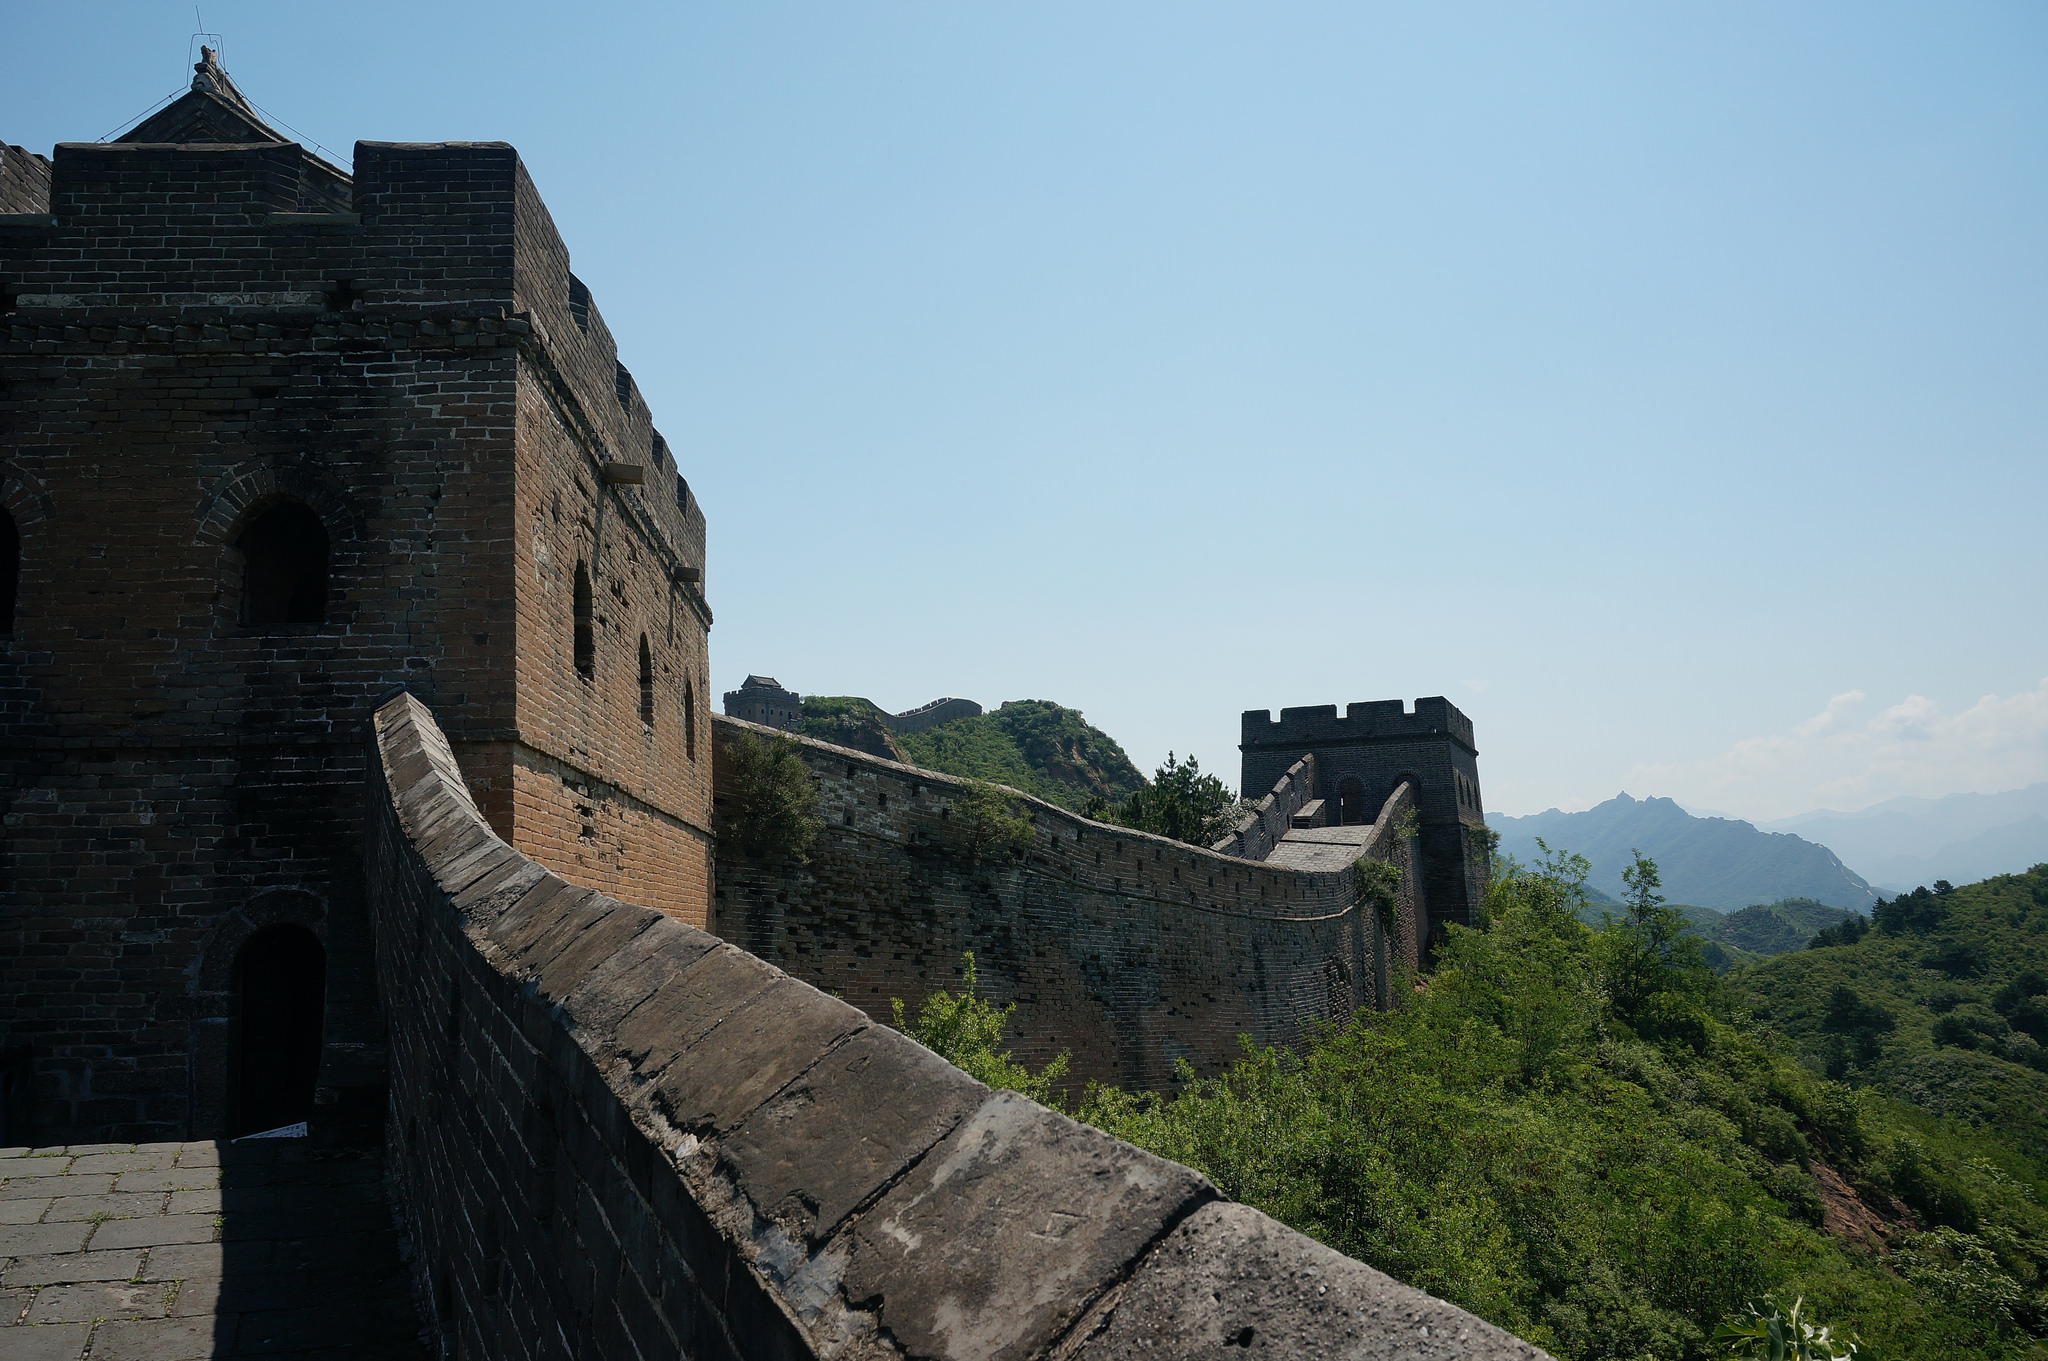 Great Wall of China by Andrew Smith on Flickr